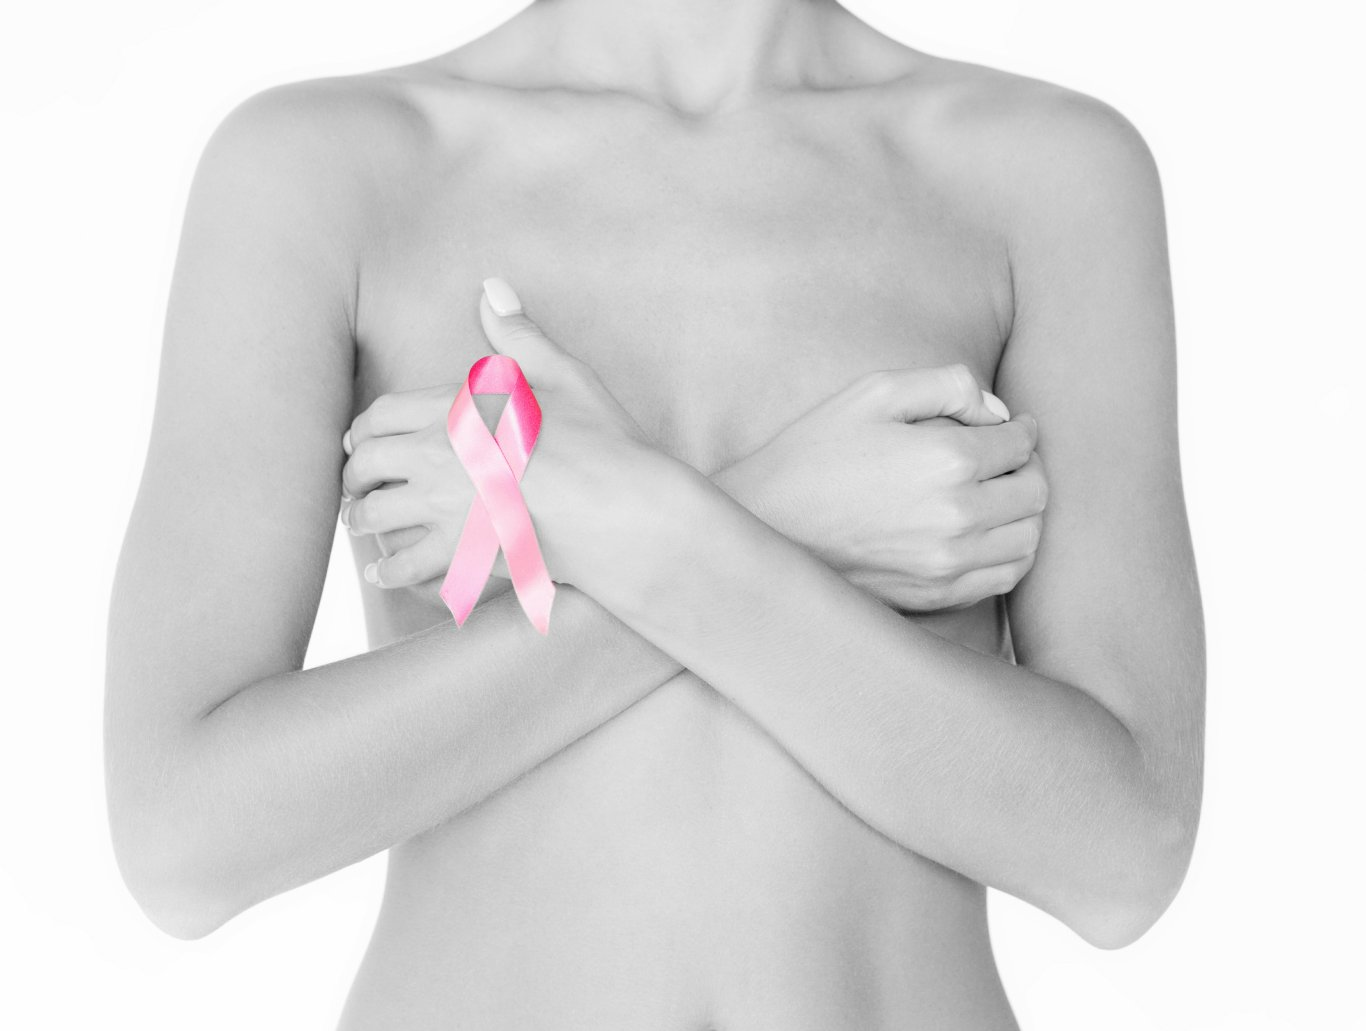 If you are looking for a breast reconstruction surgeon in South Carolina, please call board-certified plastic surgeon Dr. Ted Vaughn at 864-223-0505 today